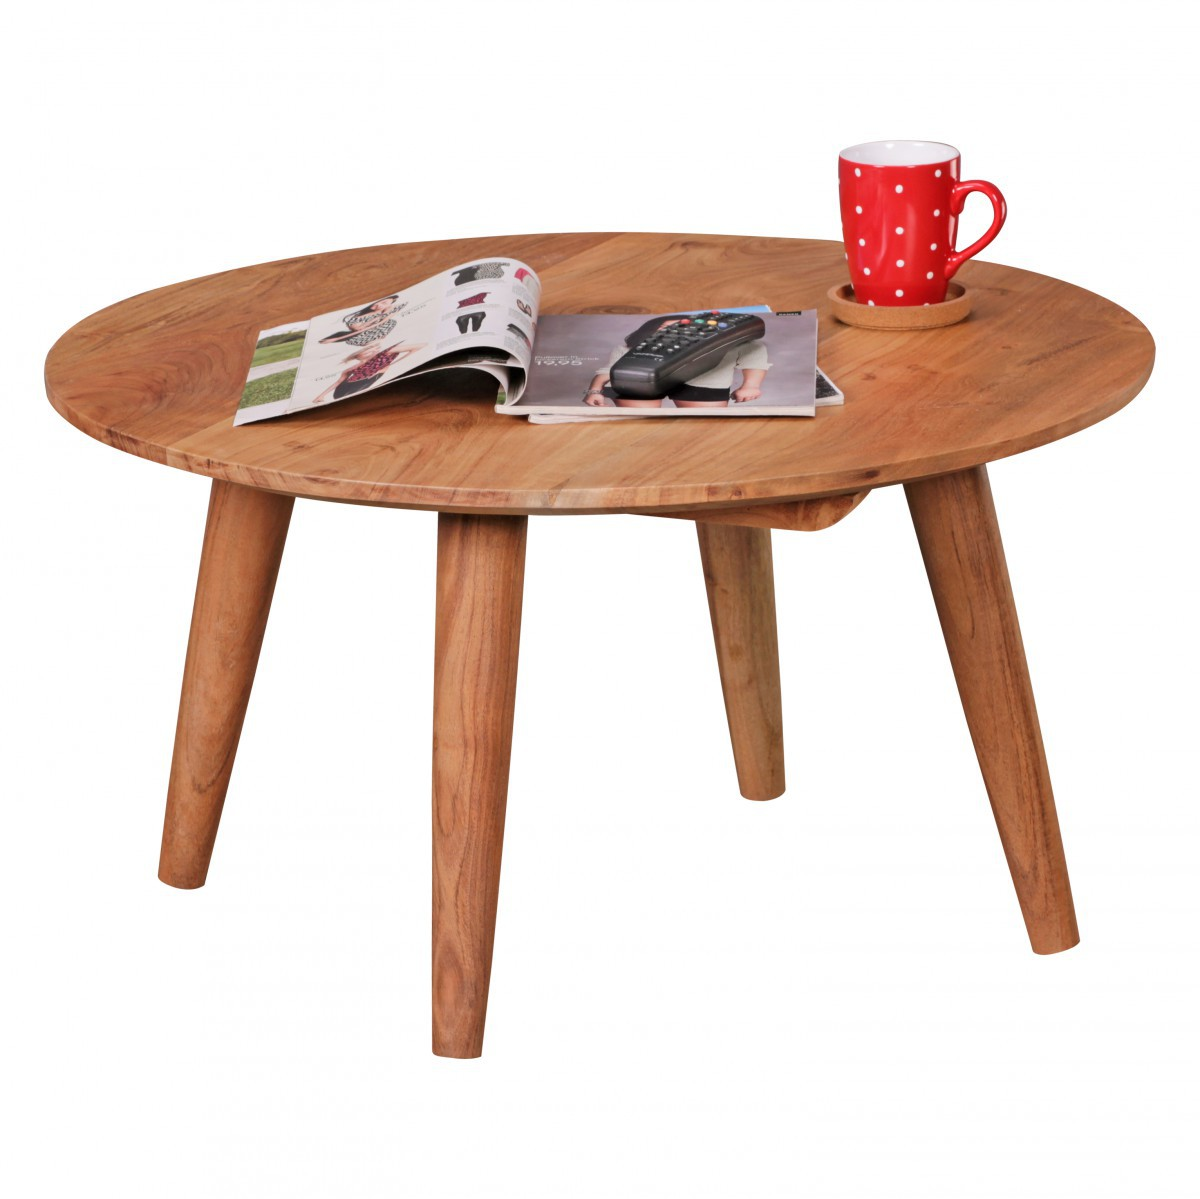 Finebuy table basse en bois massif acacia table basse ronde 75 x 40 cm ferme - Table basse ronde gigogne ...